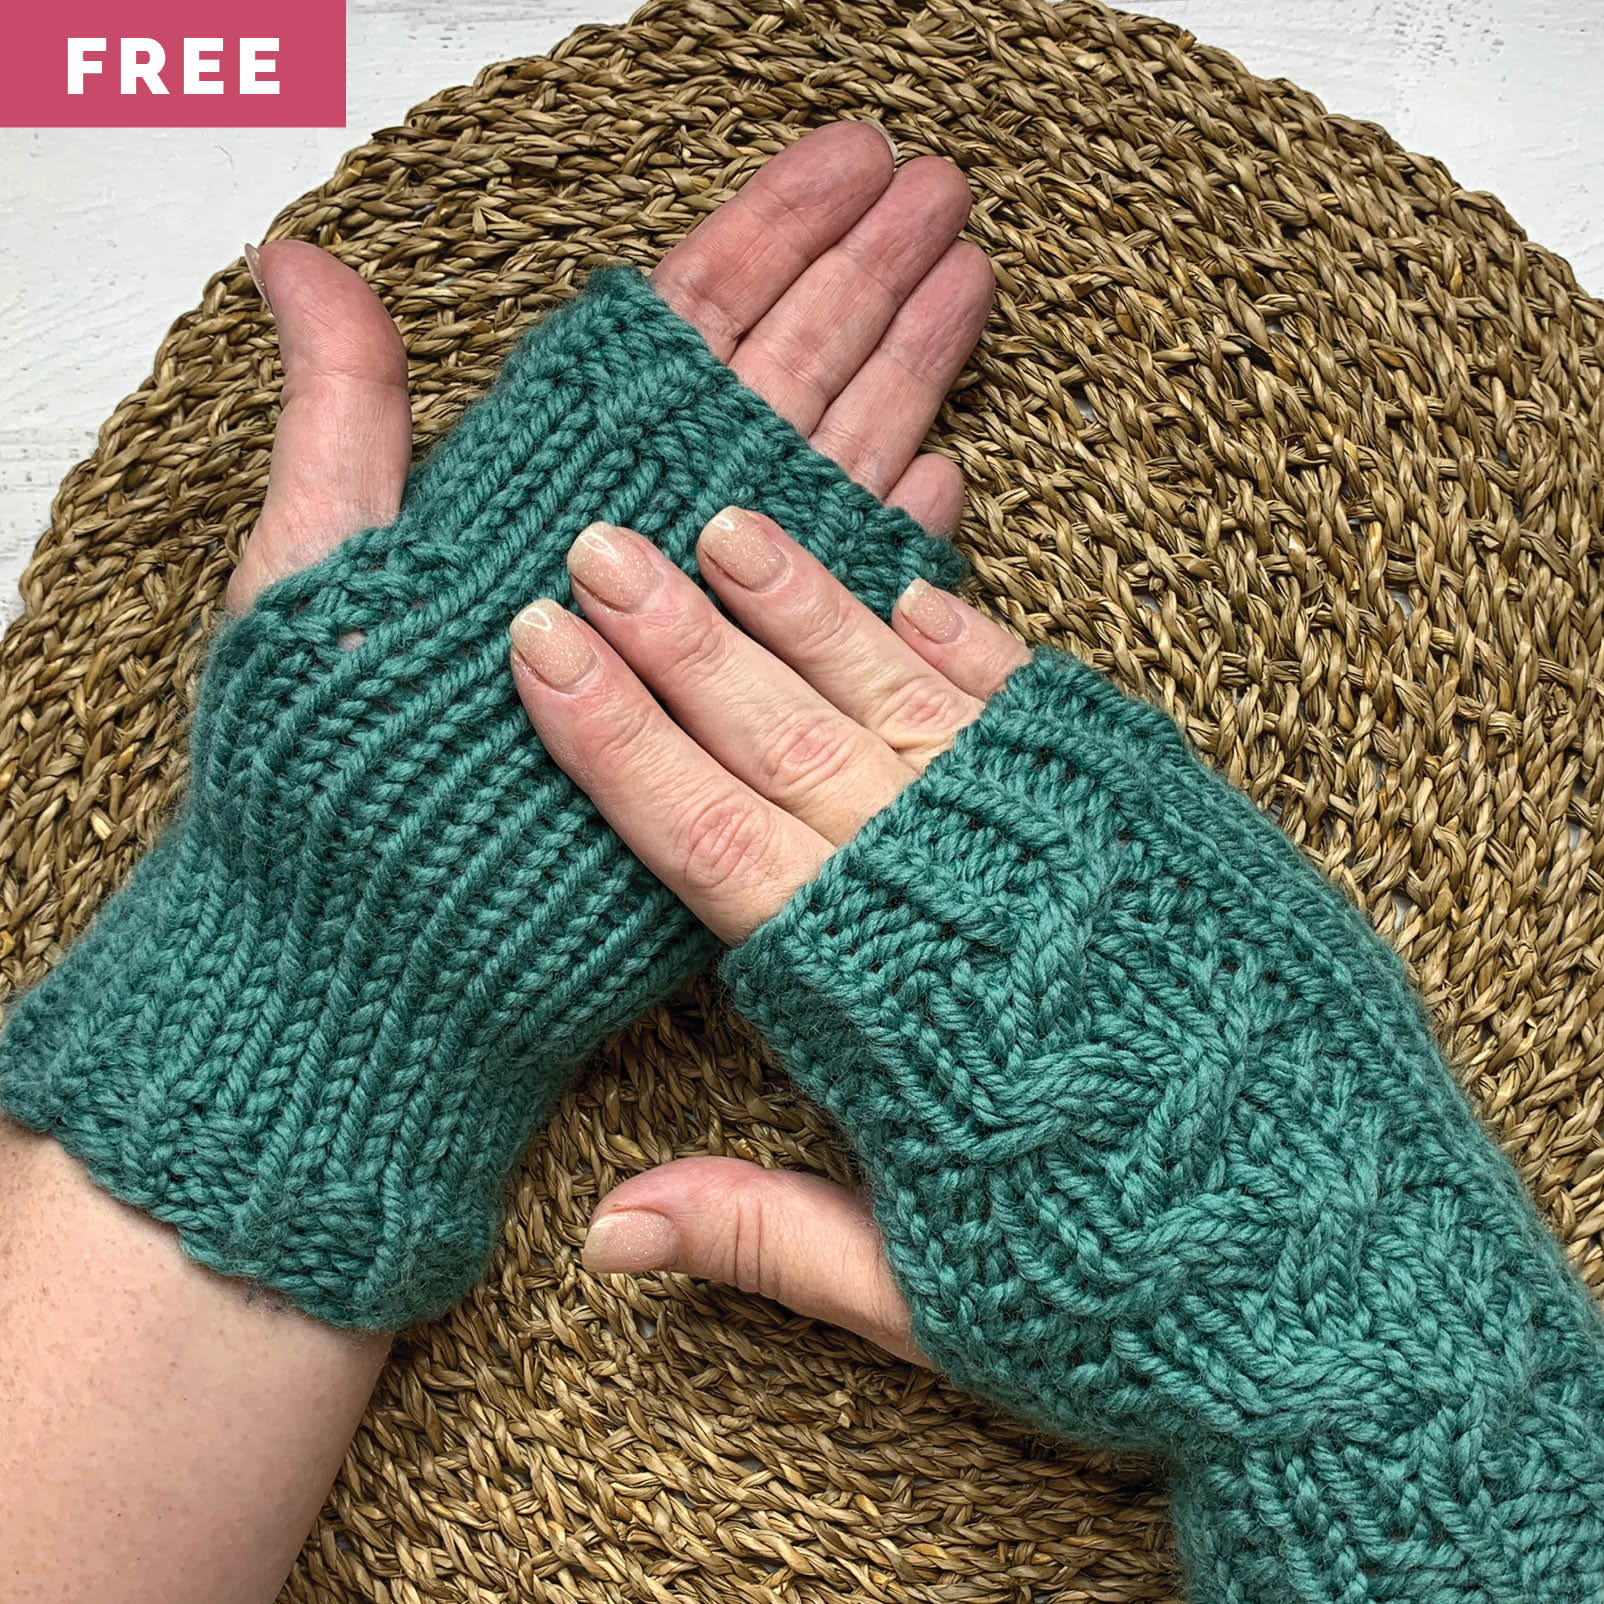 Free Knitting Pattern - Braided Cable Mitts